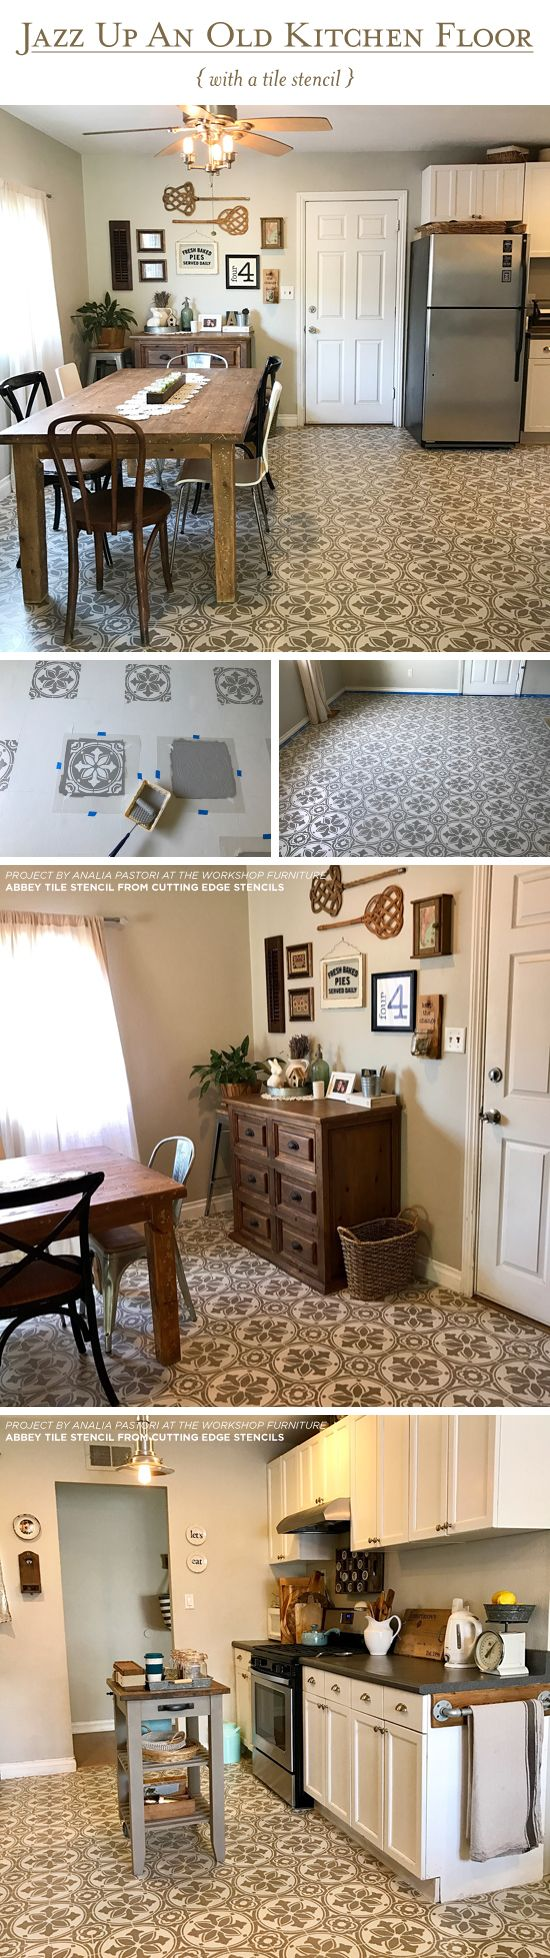 25 best painted floor tiles ideas on pinterest painted kitchen cutting edge stencils shares a diy stenciled and painted linoleum kitchen floor using the abbey tile stencil